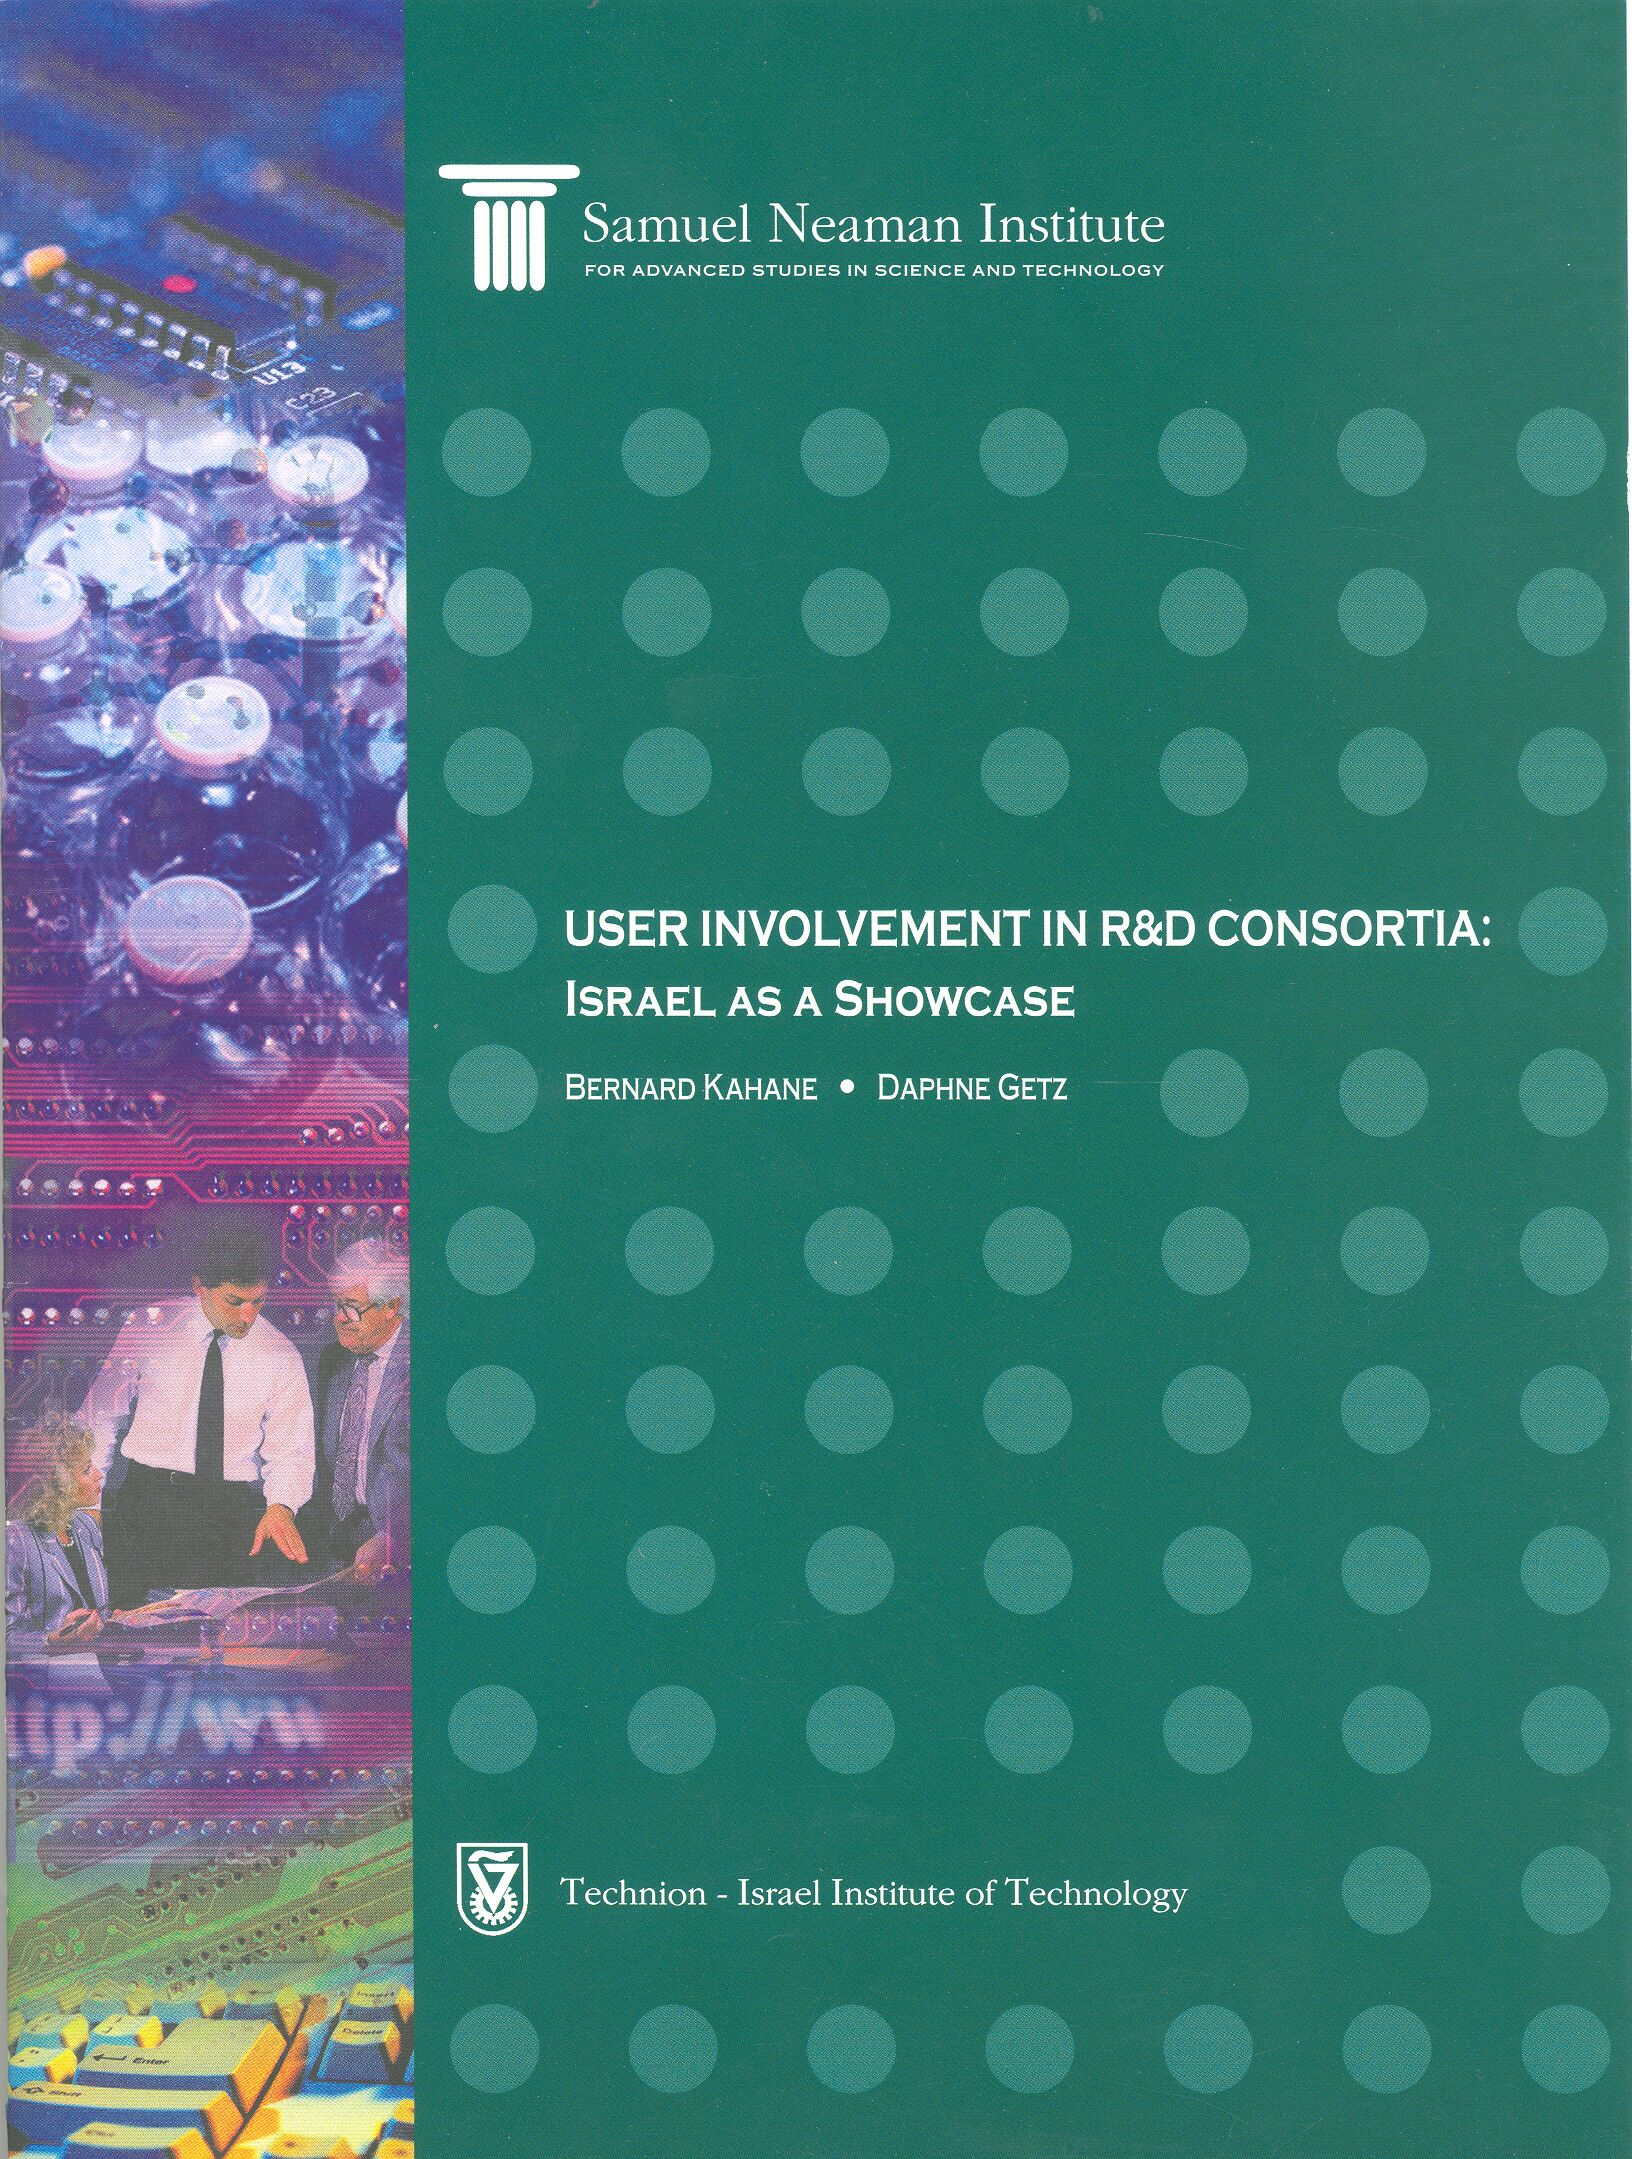 Users Involvement in R&D Consortia: Israel as a Showcase